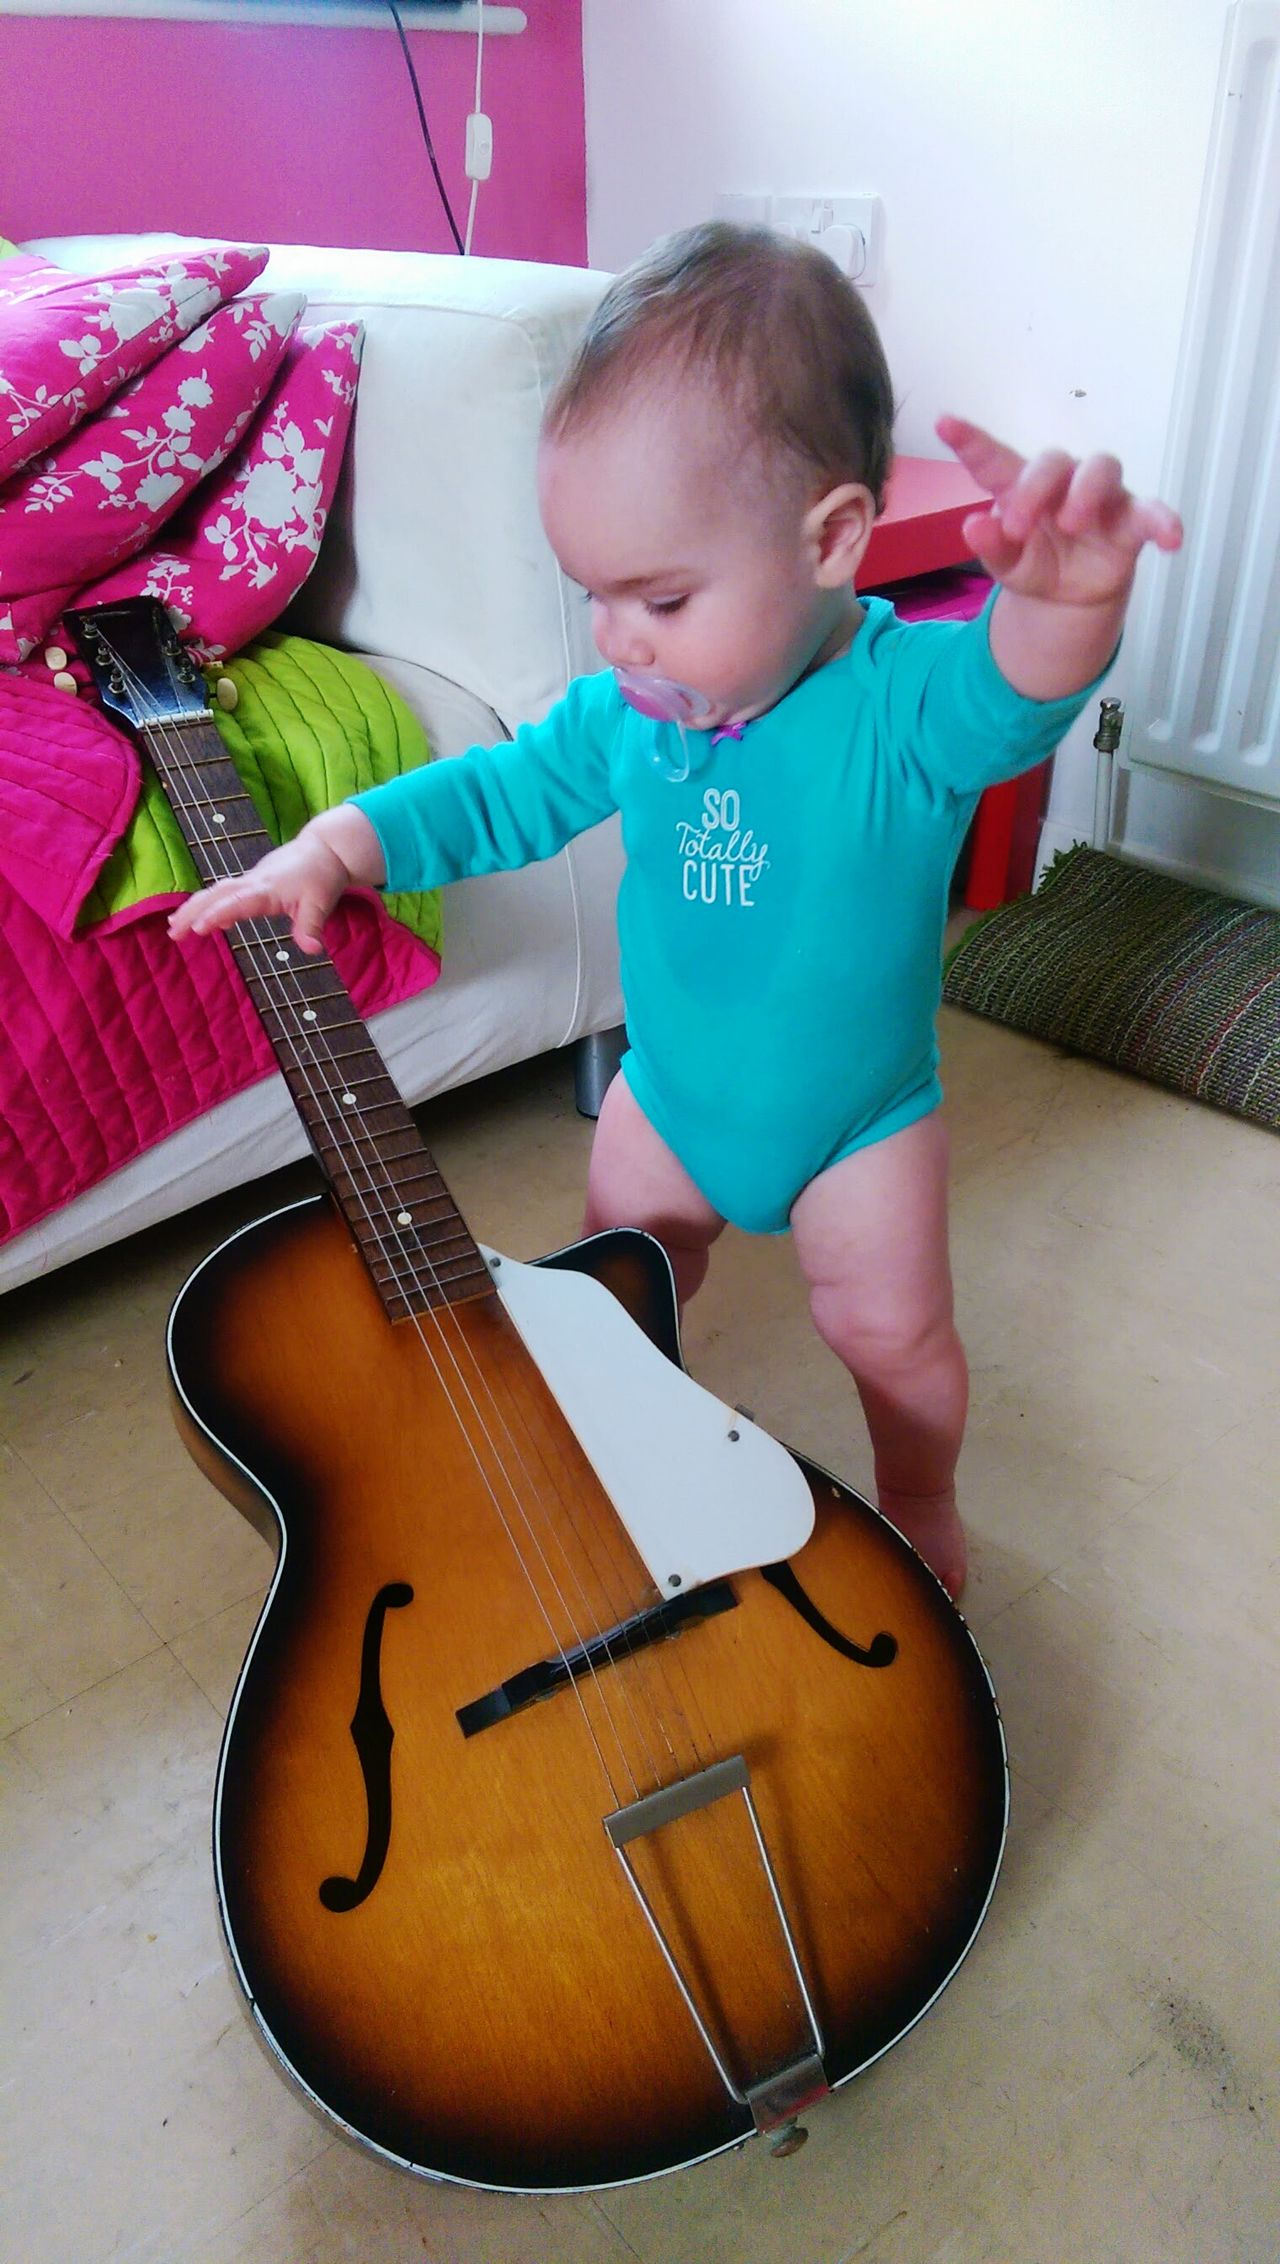 Guitar Playing One Person Music Baby Domestic Life Pacifier Dummy Cute